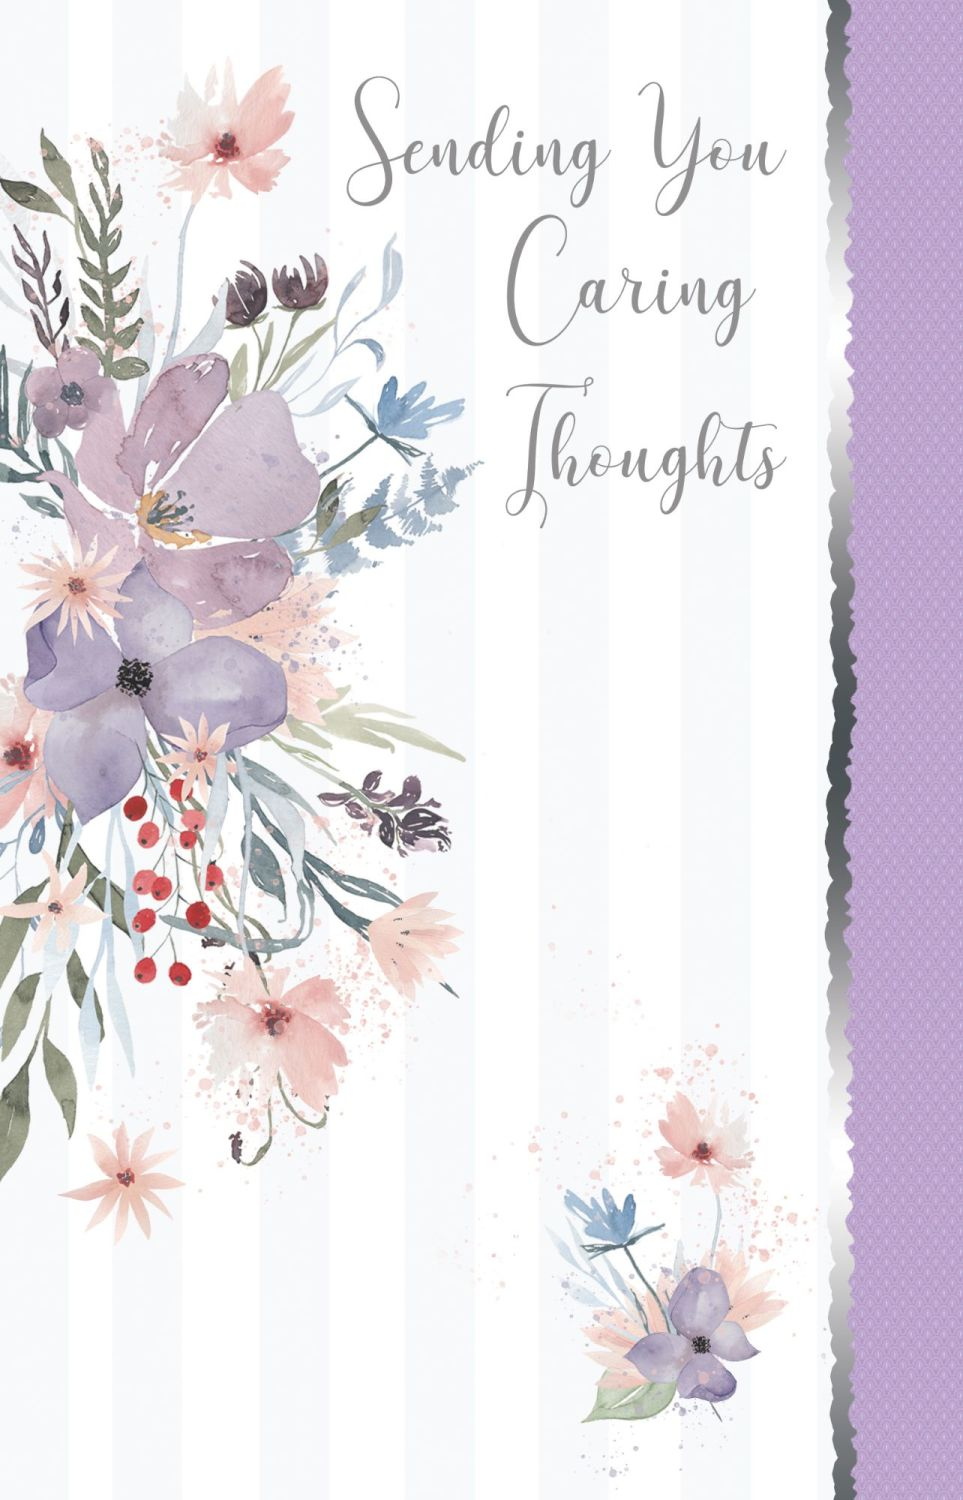 Floral Sympathy Cards - SENDING You CARING Thoughts - CONDOLENCE Cards - BE